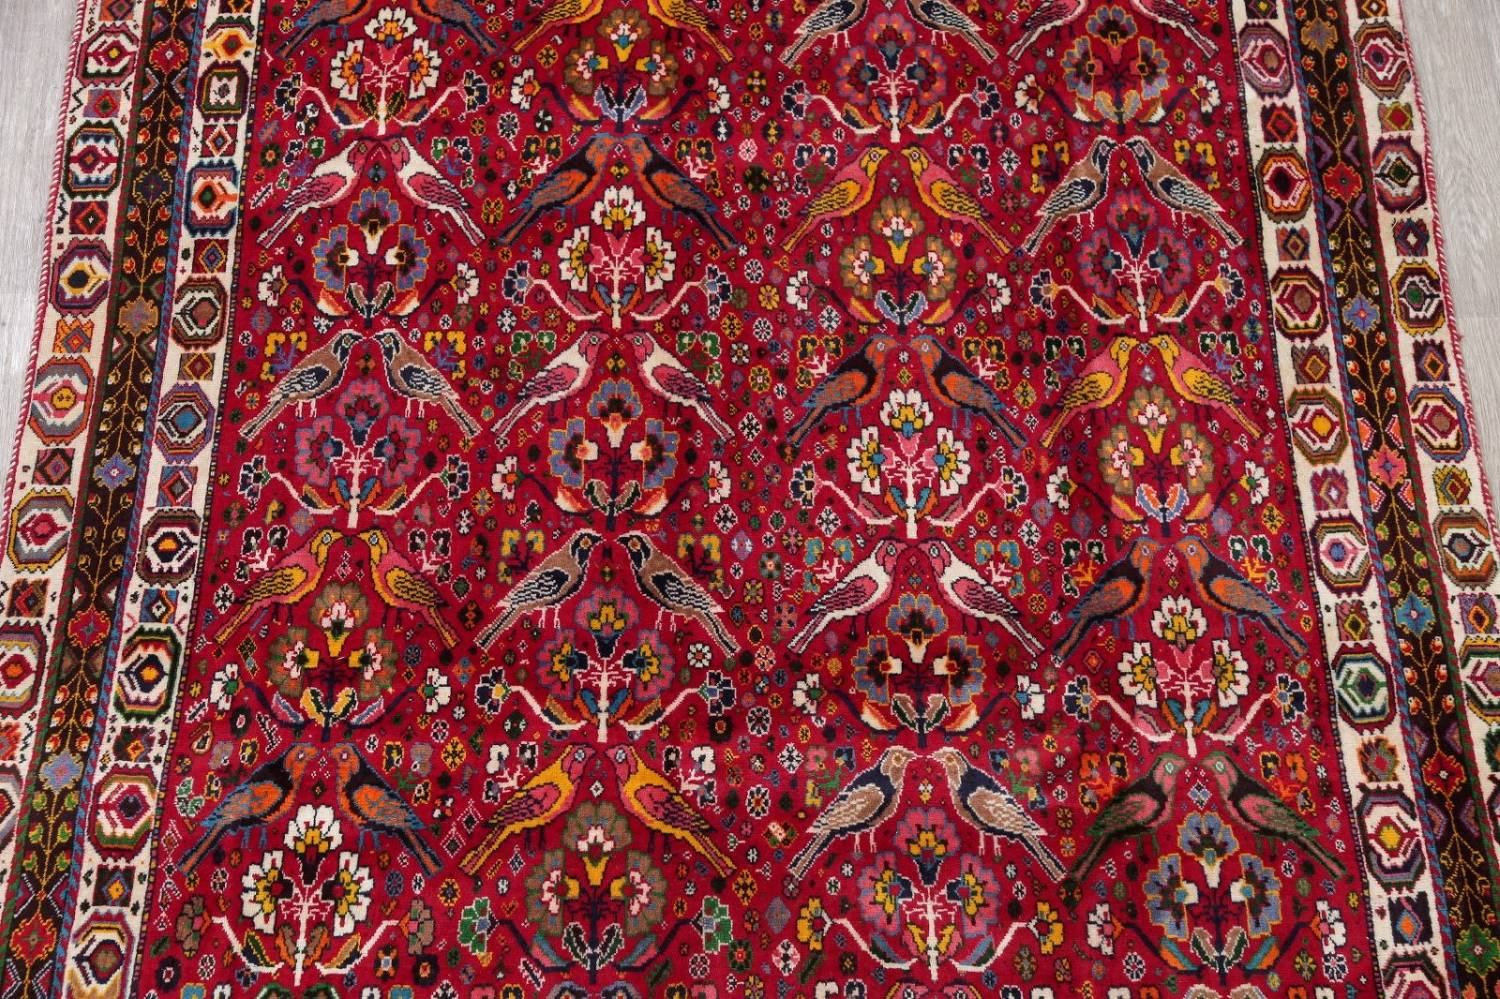 Animal Pictorial Kashkoli Persian Hand-Knotted 7x10 Wool Area Rug image 3